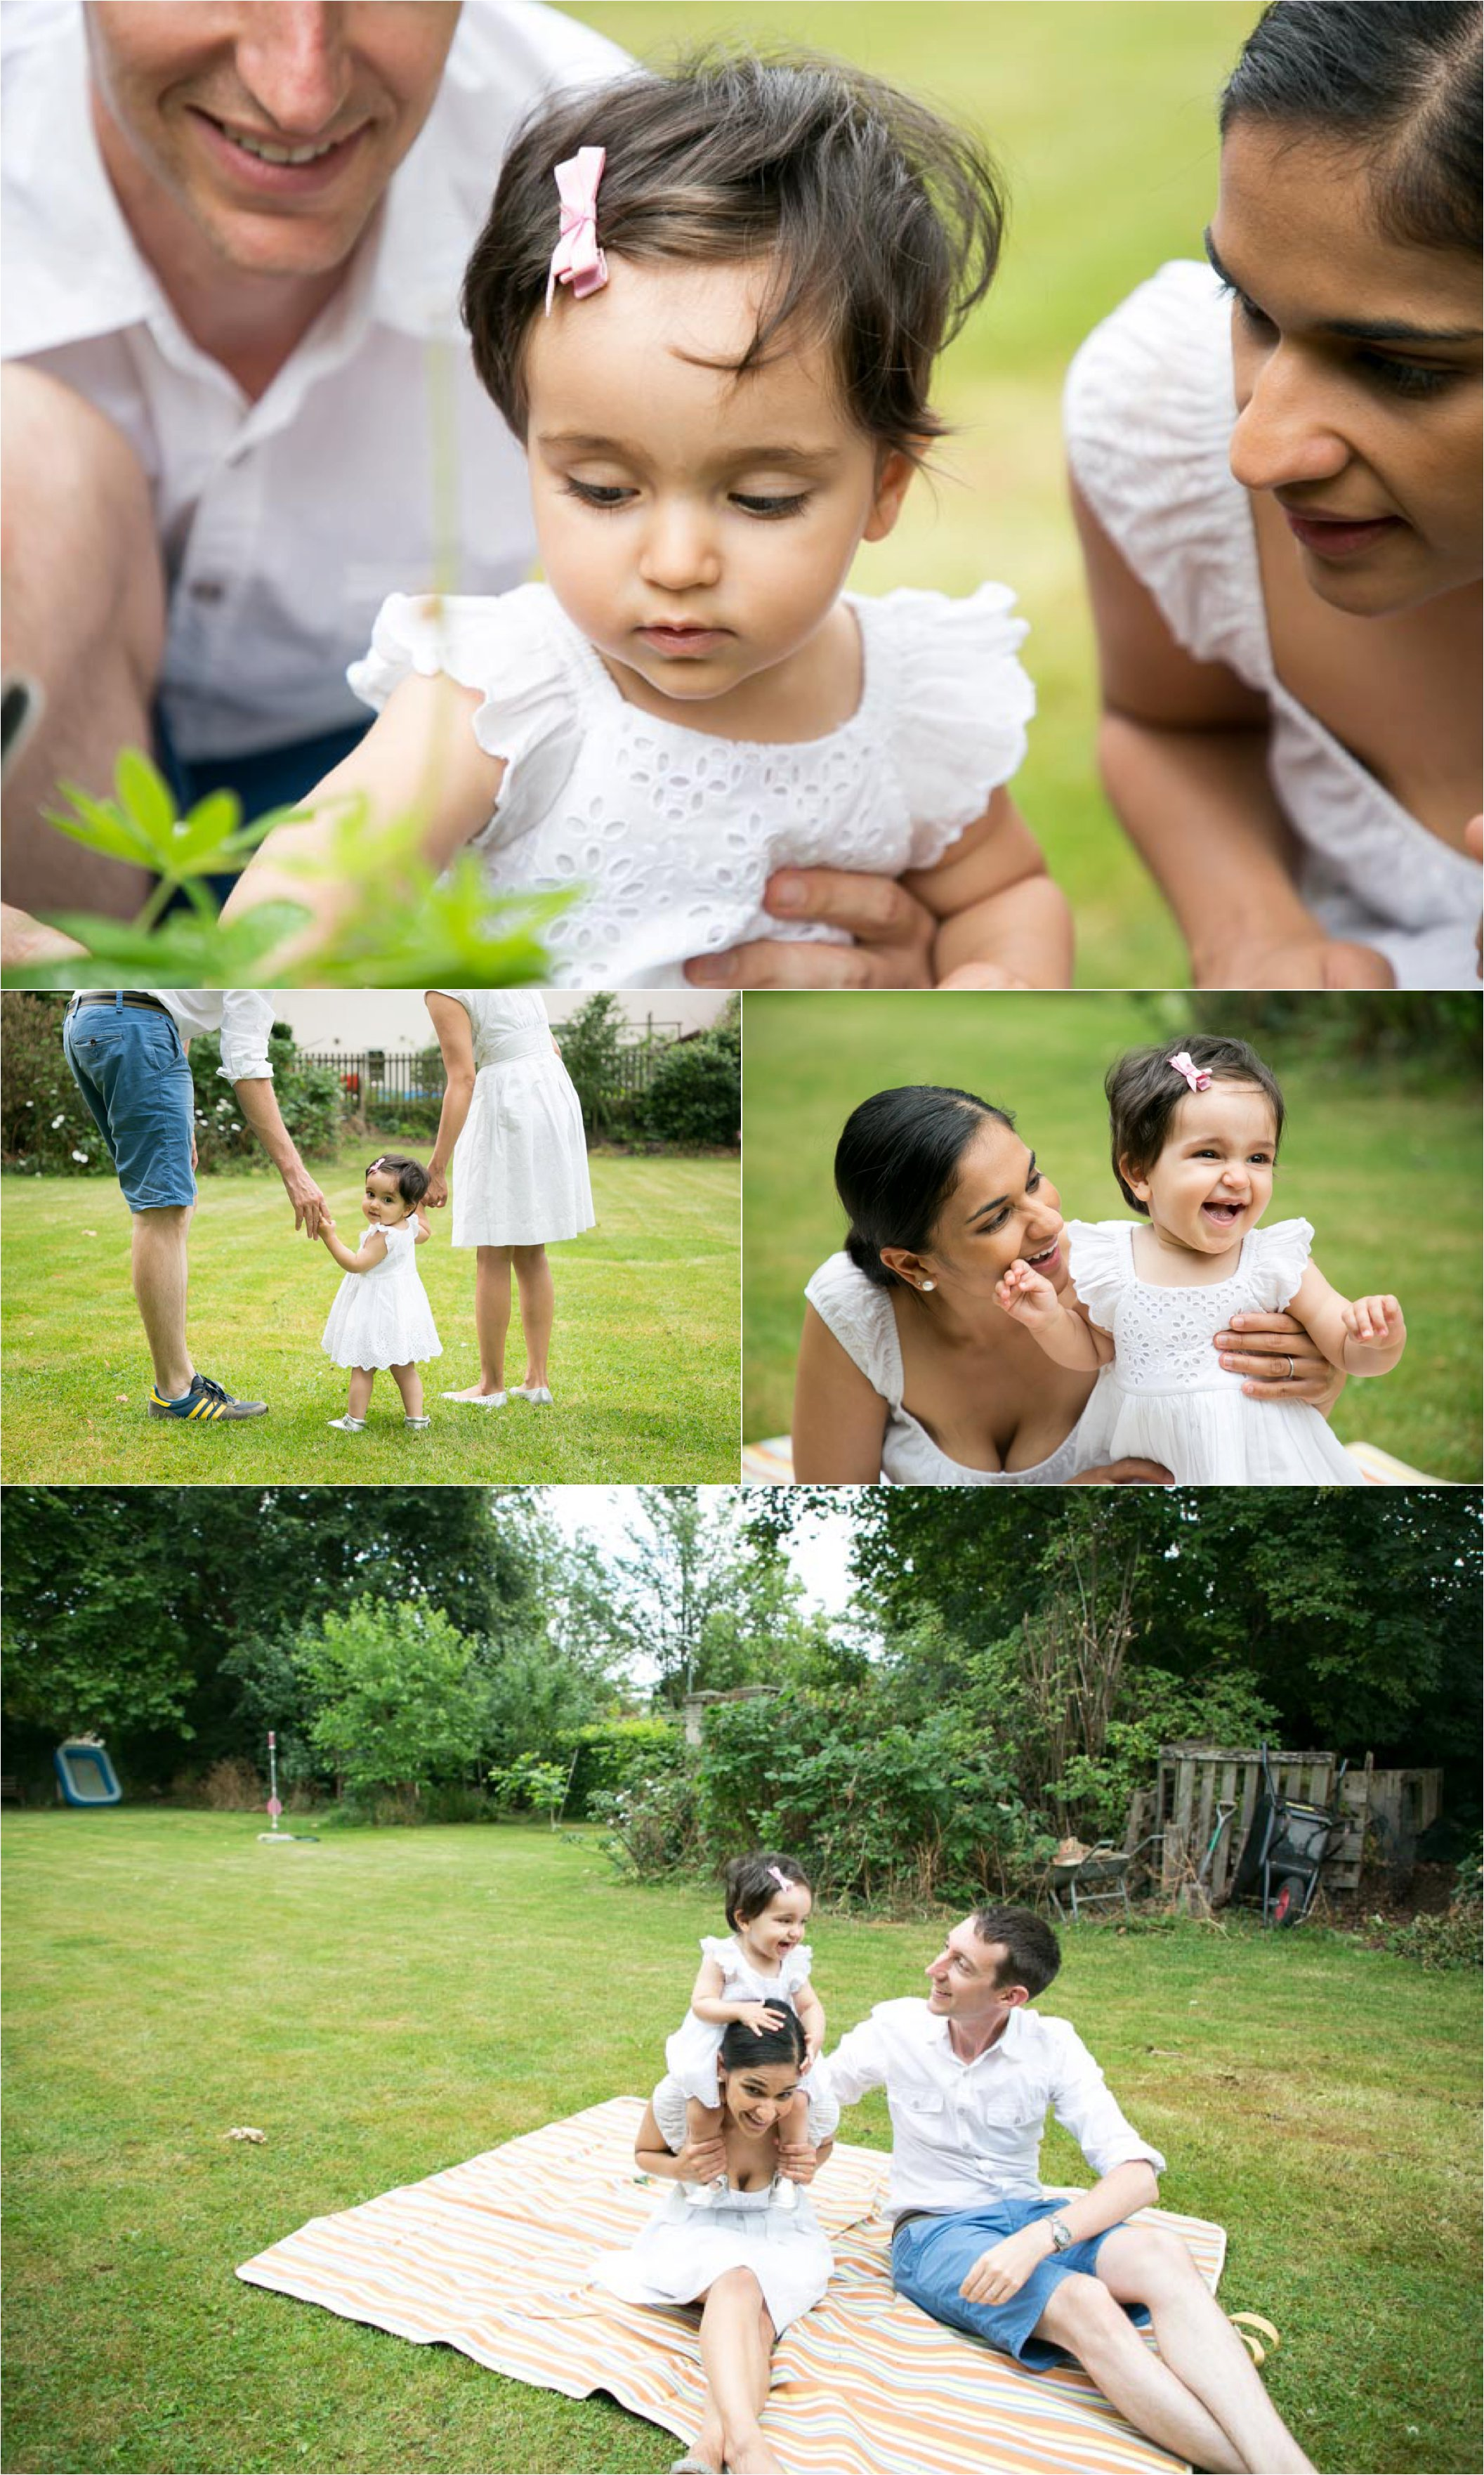 relaxed family photography in Cambridge, in the garden relaxing together